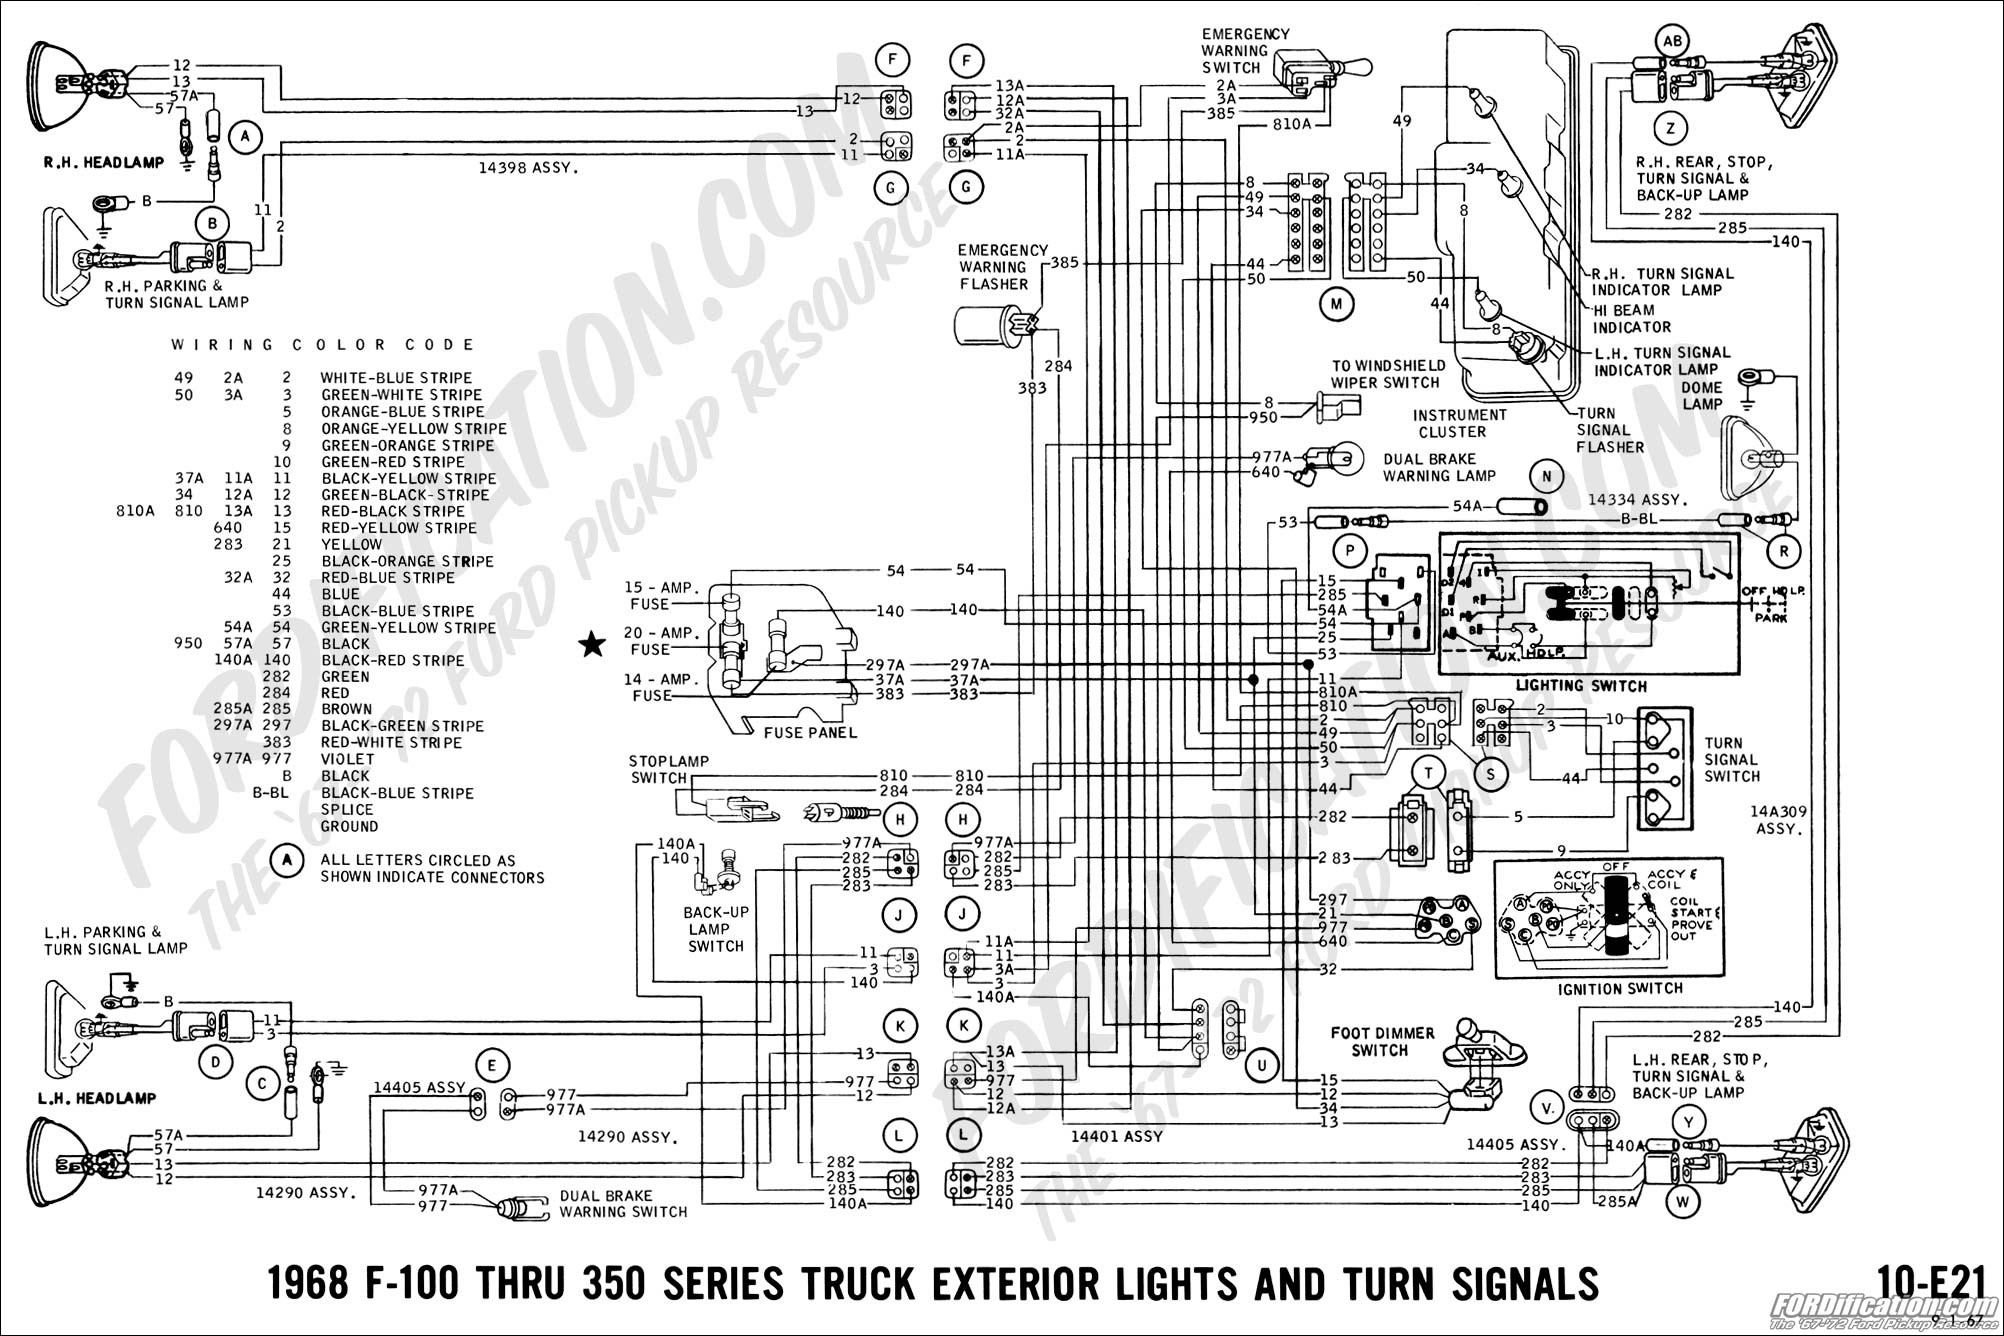 Turn Signal Wire Diagram ford Truck Technical Drawings and Schematics Section H Wiring Of Turn Signal Wire Diagram